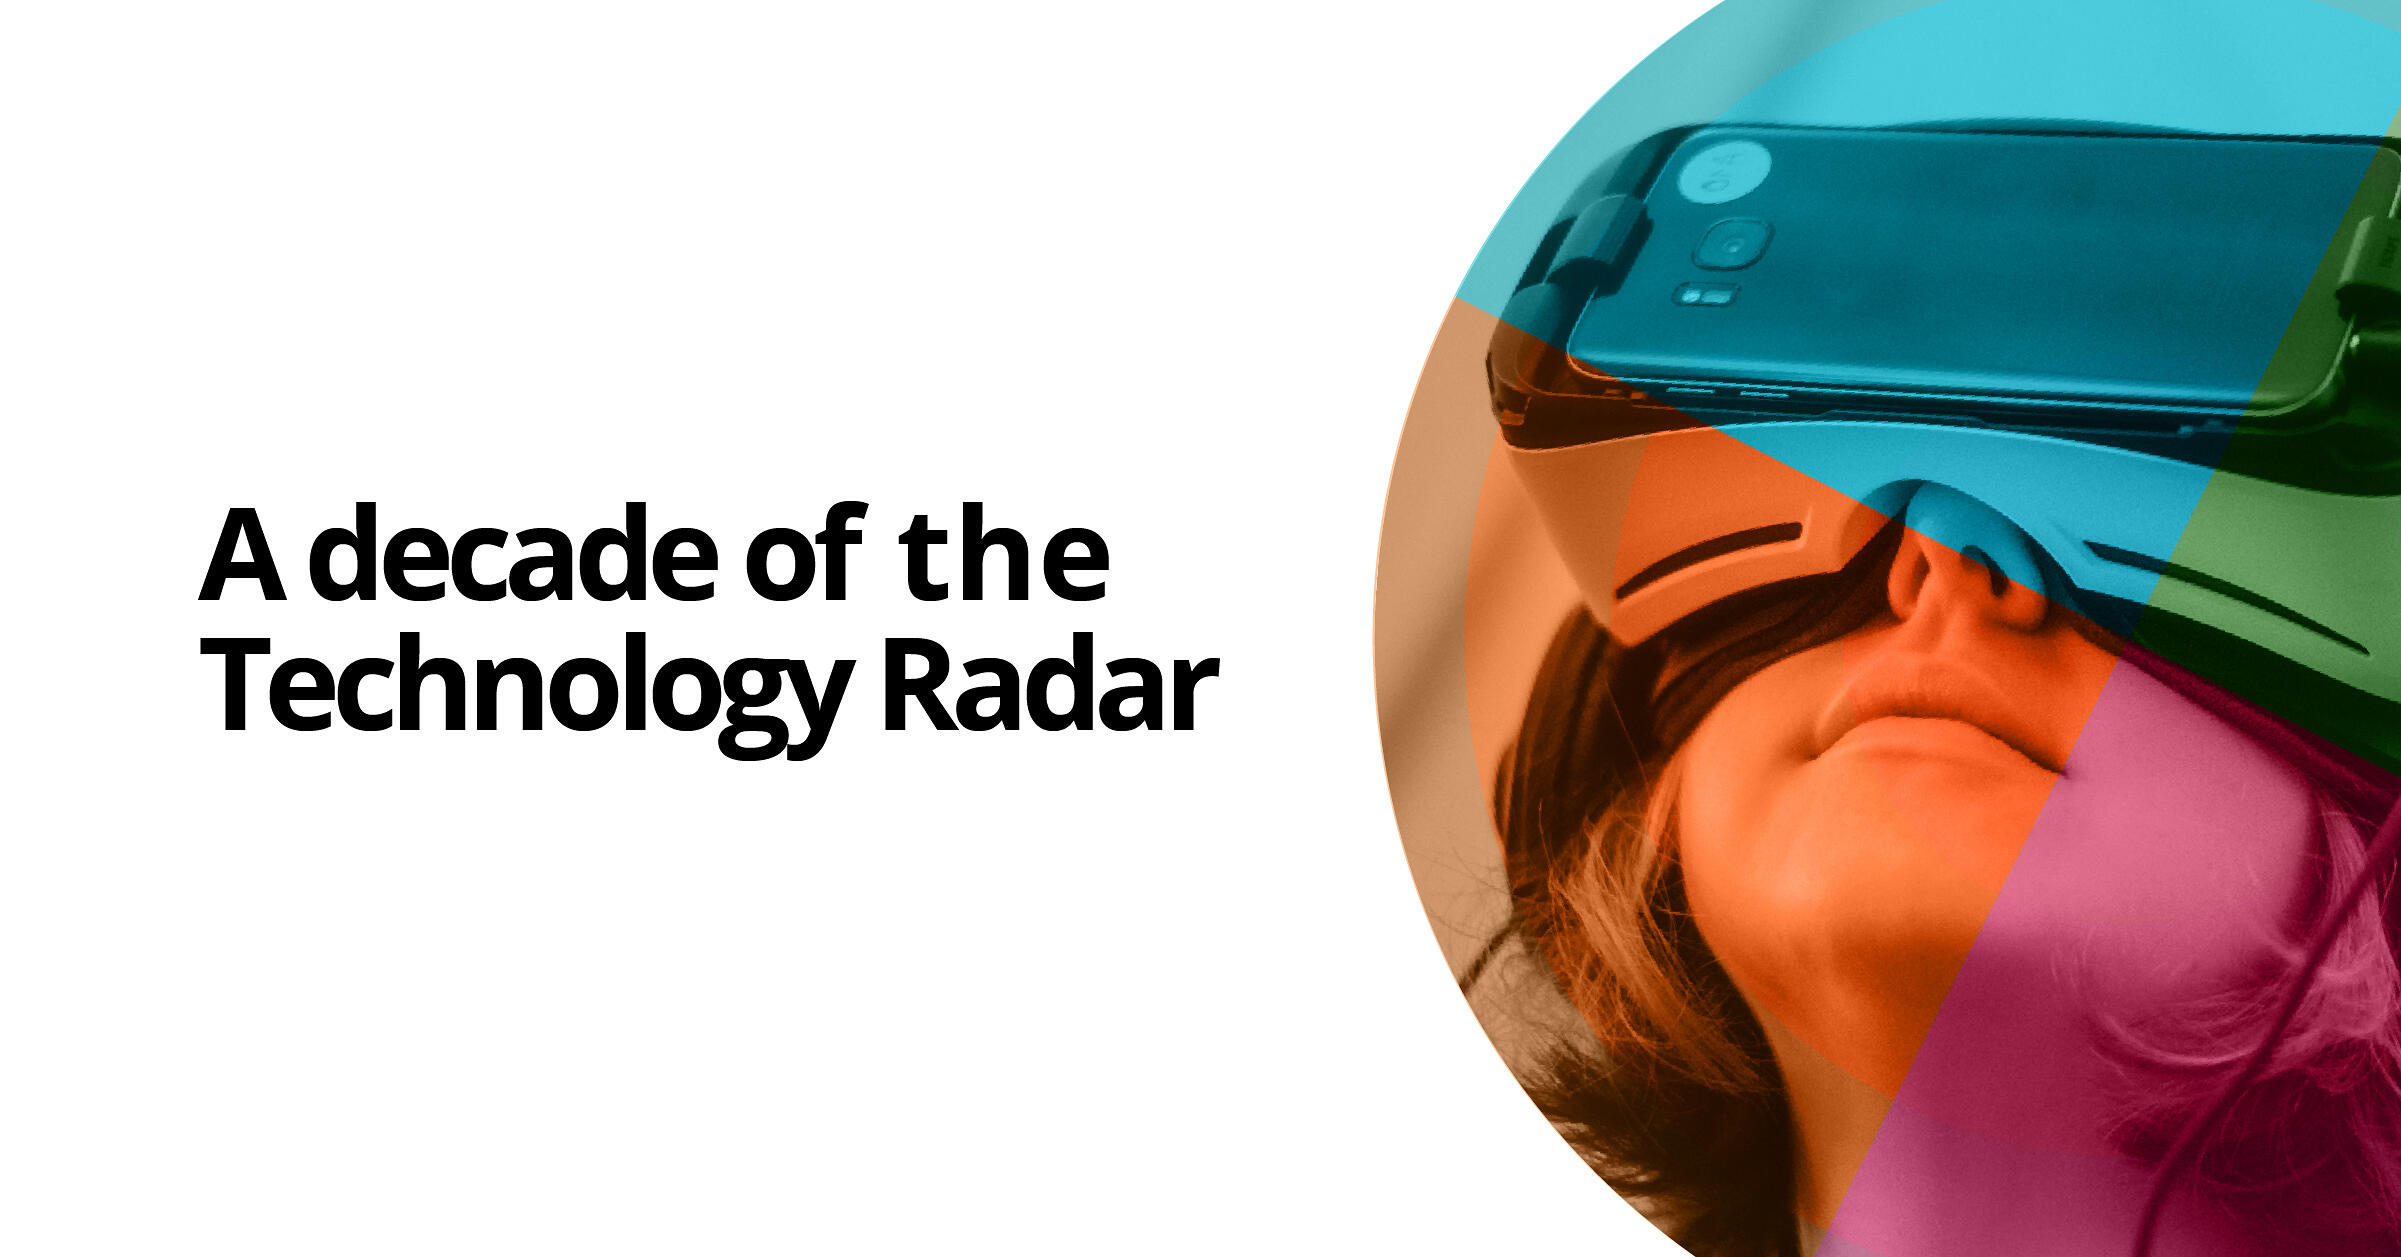 10 ปีของ Technology Radar